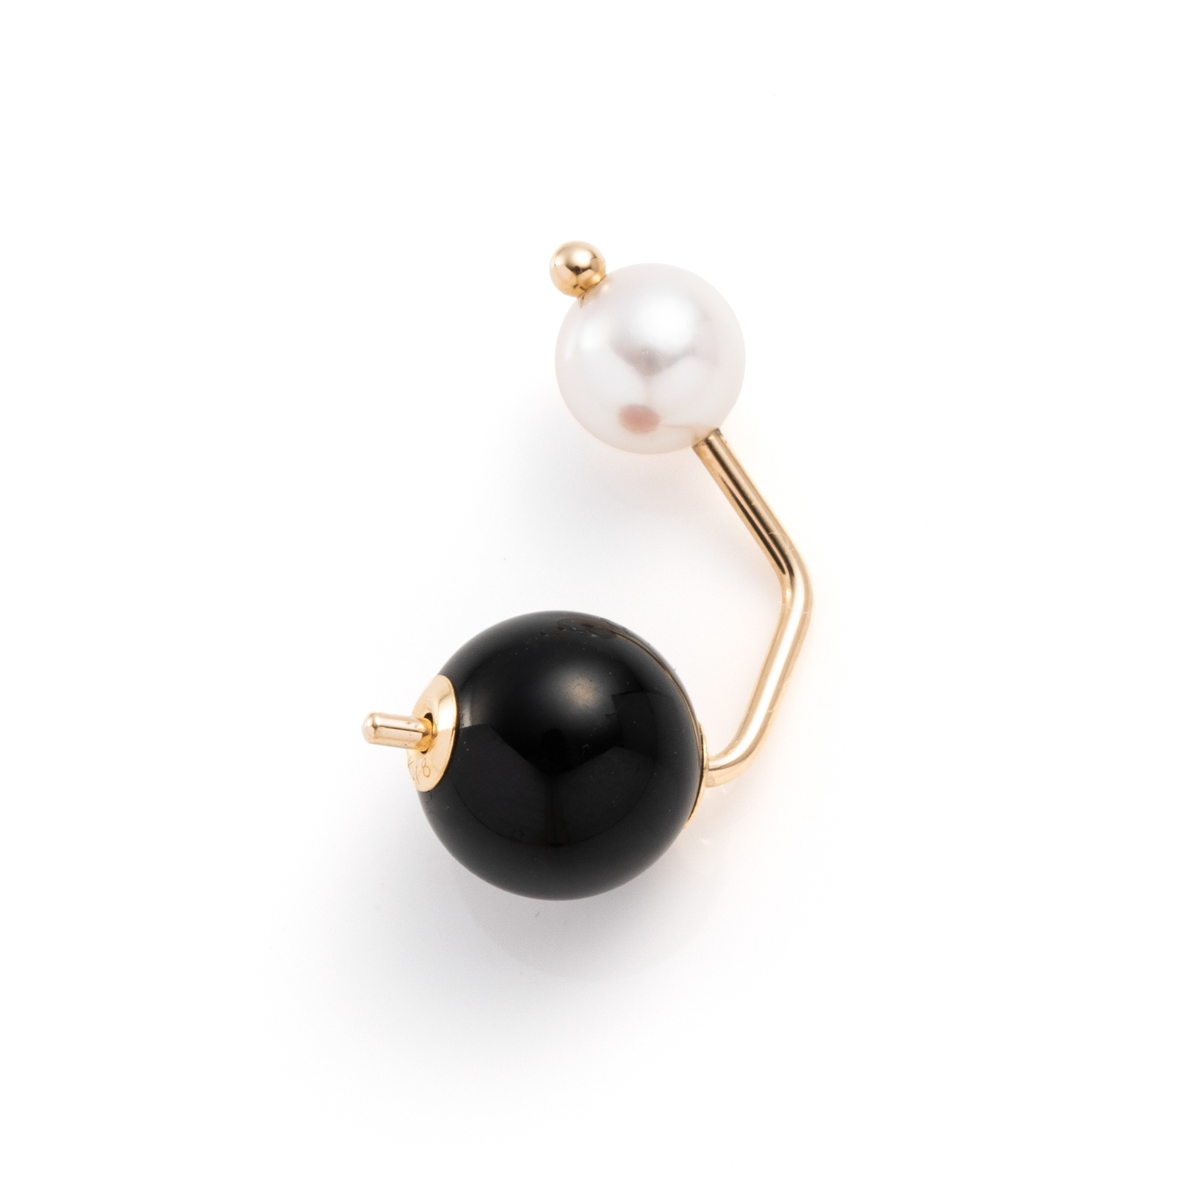 Bumble Bee Pearl Earring with Onyx Backing PE54KPE / CT27GCC  Bumblebee バンブルビー アコヤ パールキャッチ オニキス